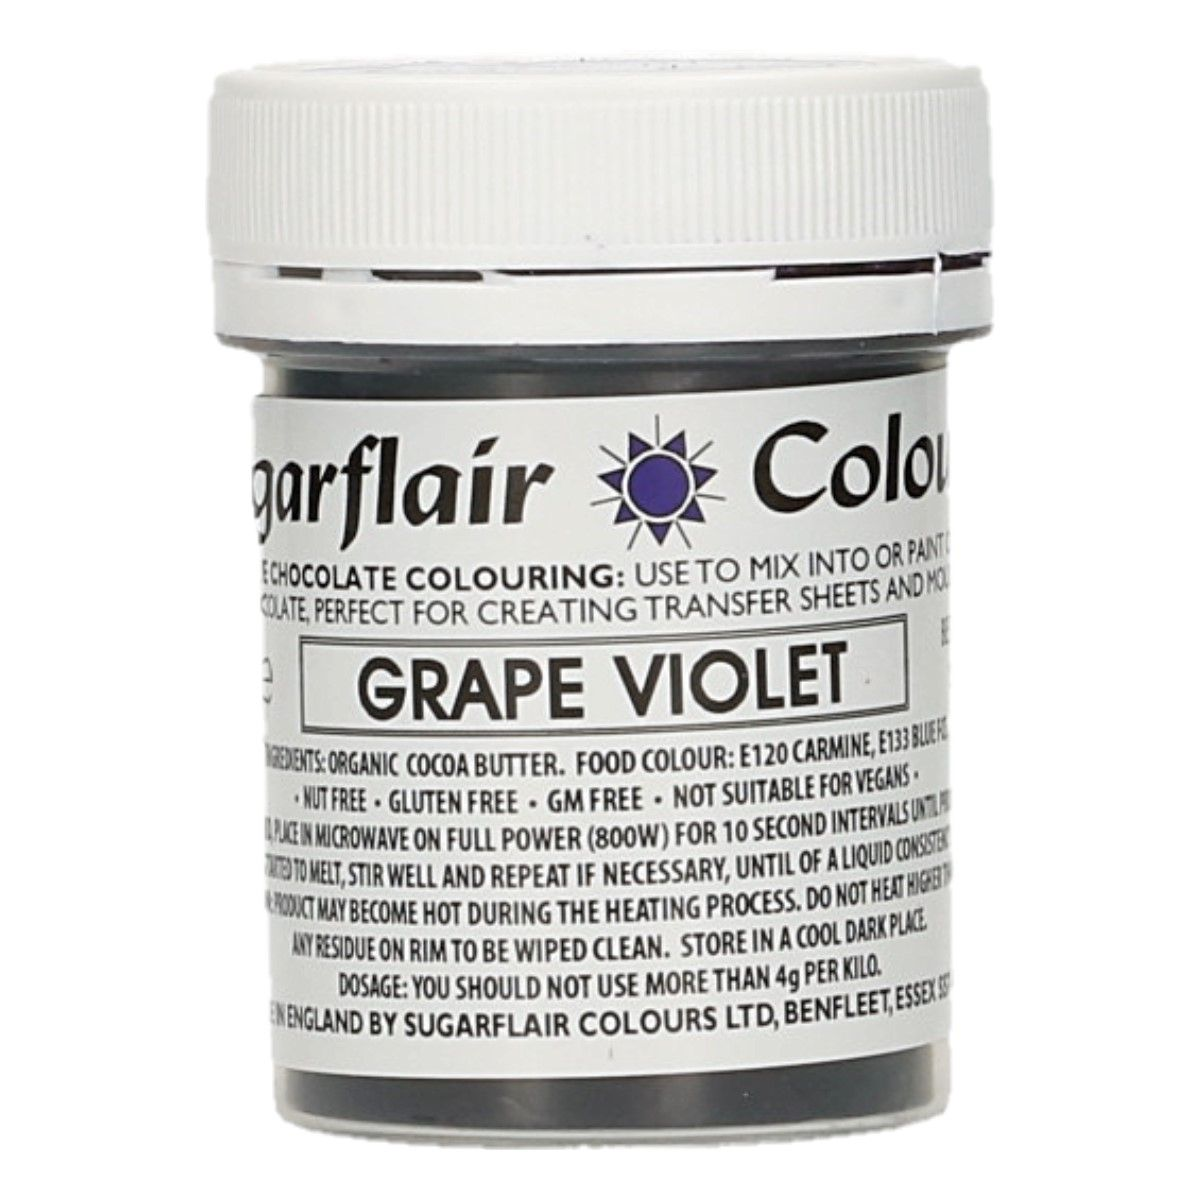 Sugarflair Chocolate Colour Grape Violet 35g